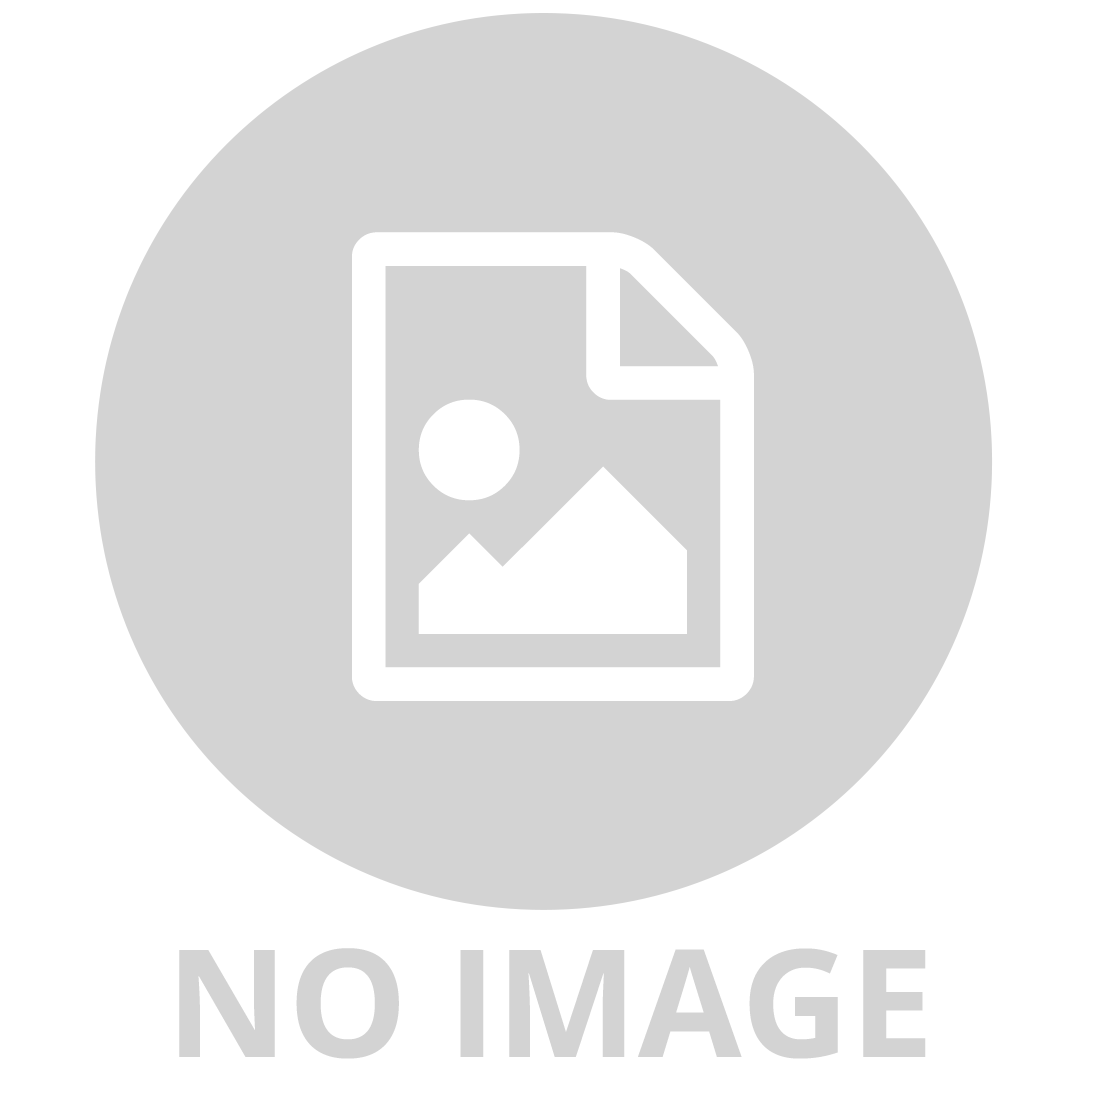 PEDAL TRACTOR WITH EXCAVATOR